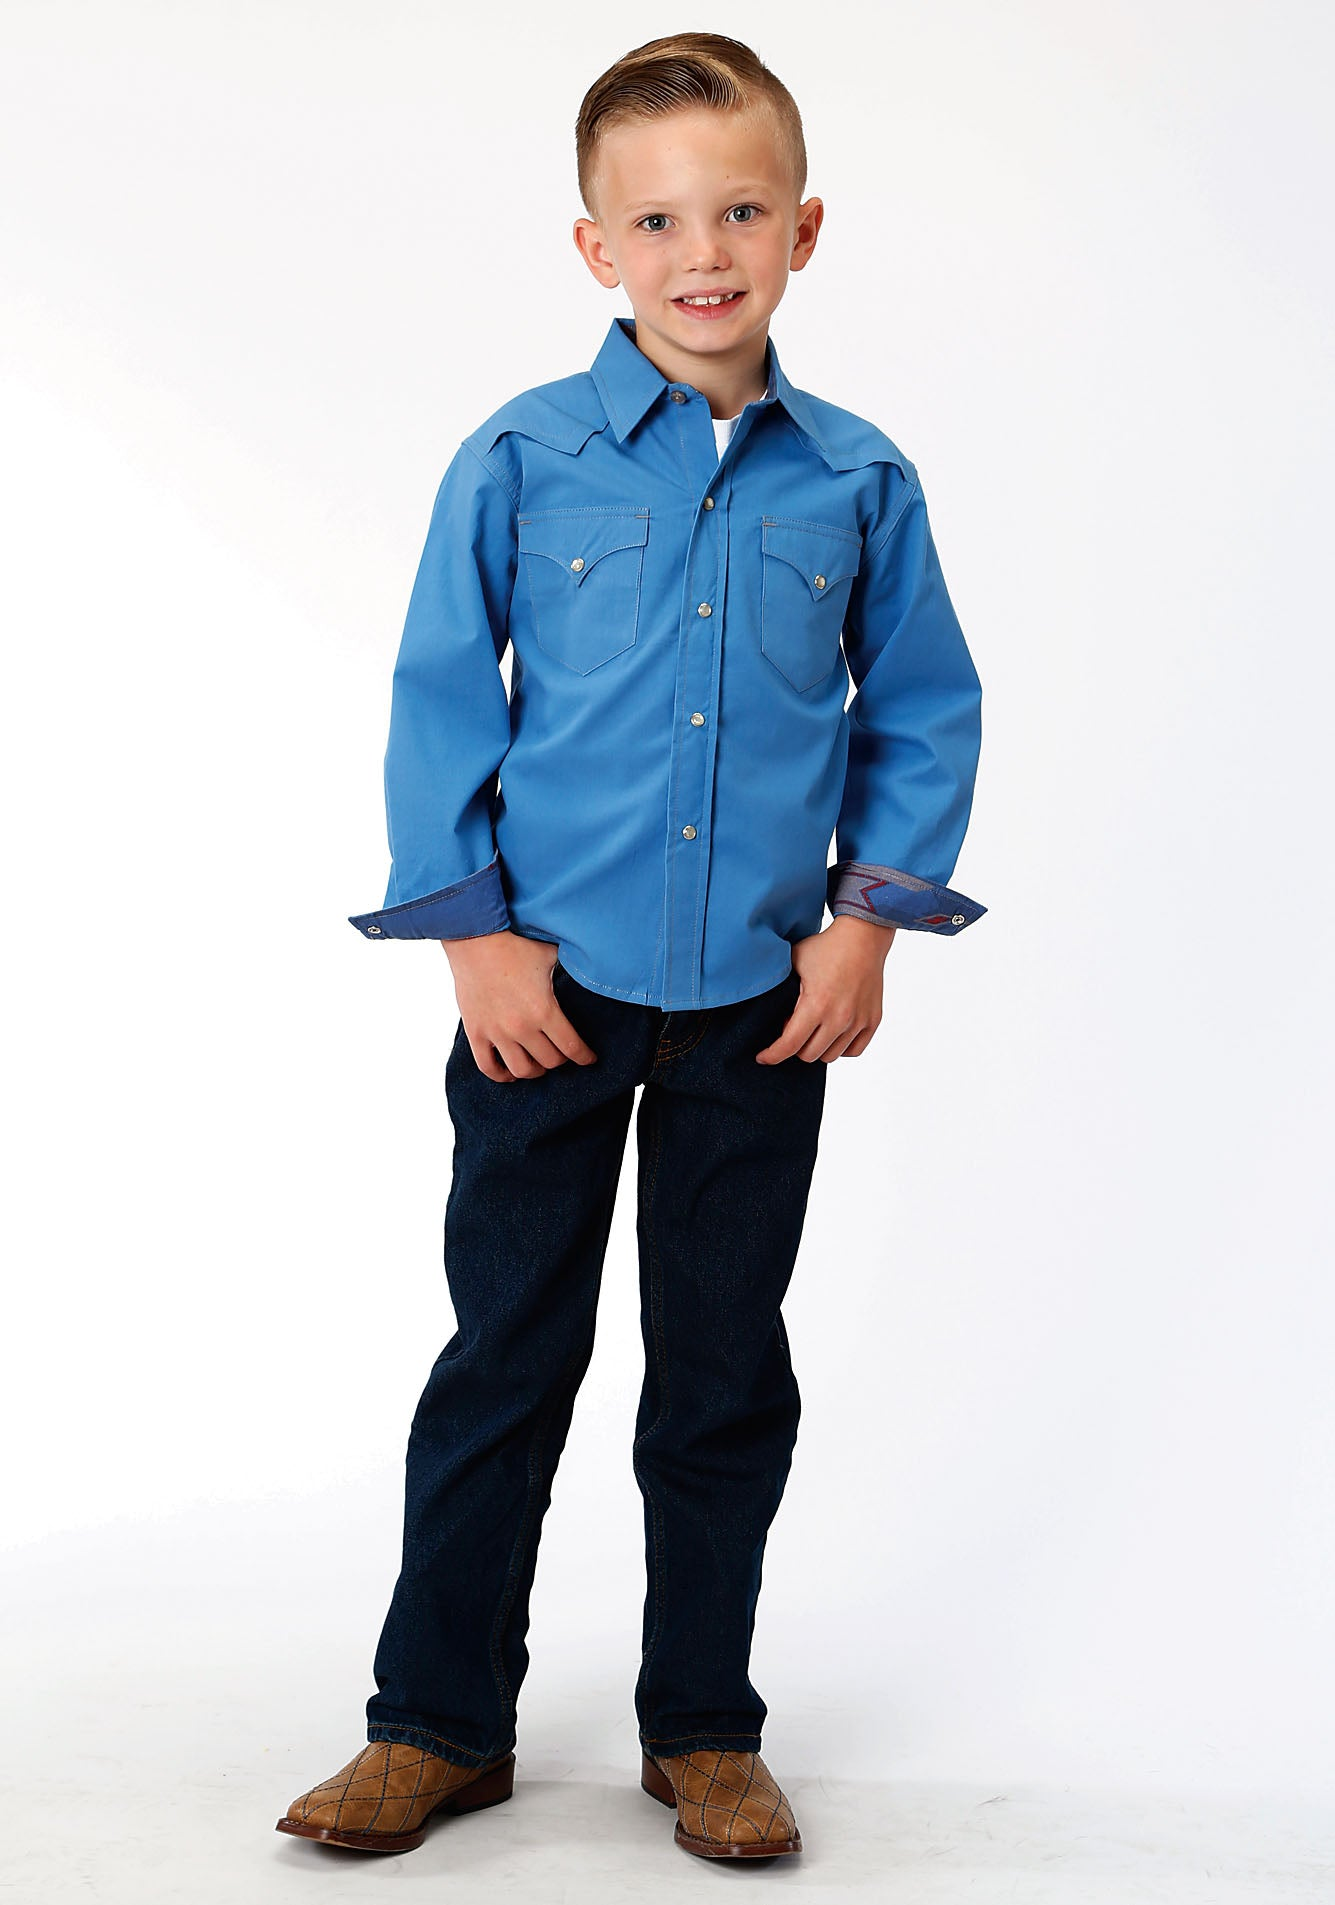 ROPER BOYS BLUE 00106 SOLID POPLIN - BLUE WEST MADE COLLECTION LONG SLEEVE